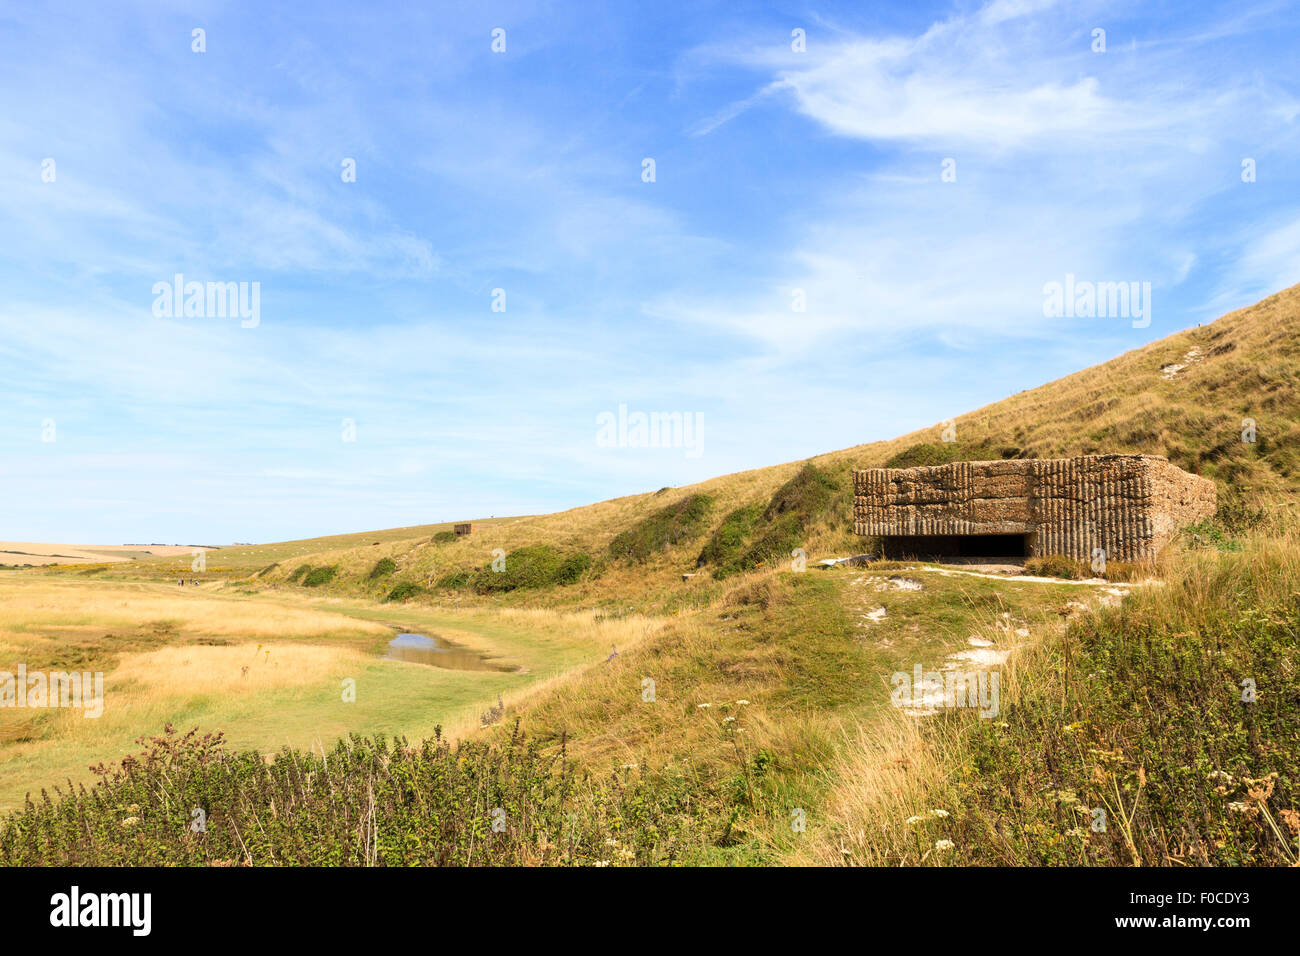 WW2 pillbox at Cuckmere Haven, East Sussex, England, UK - Stock Image